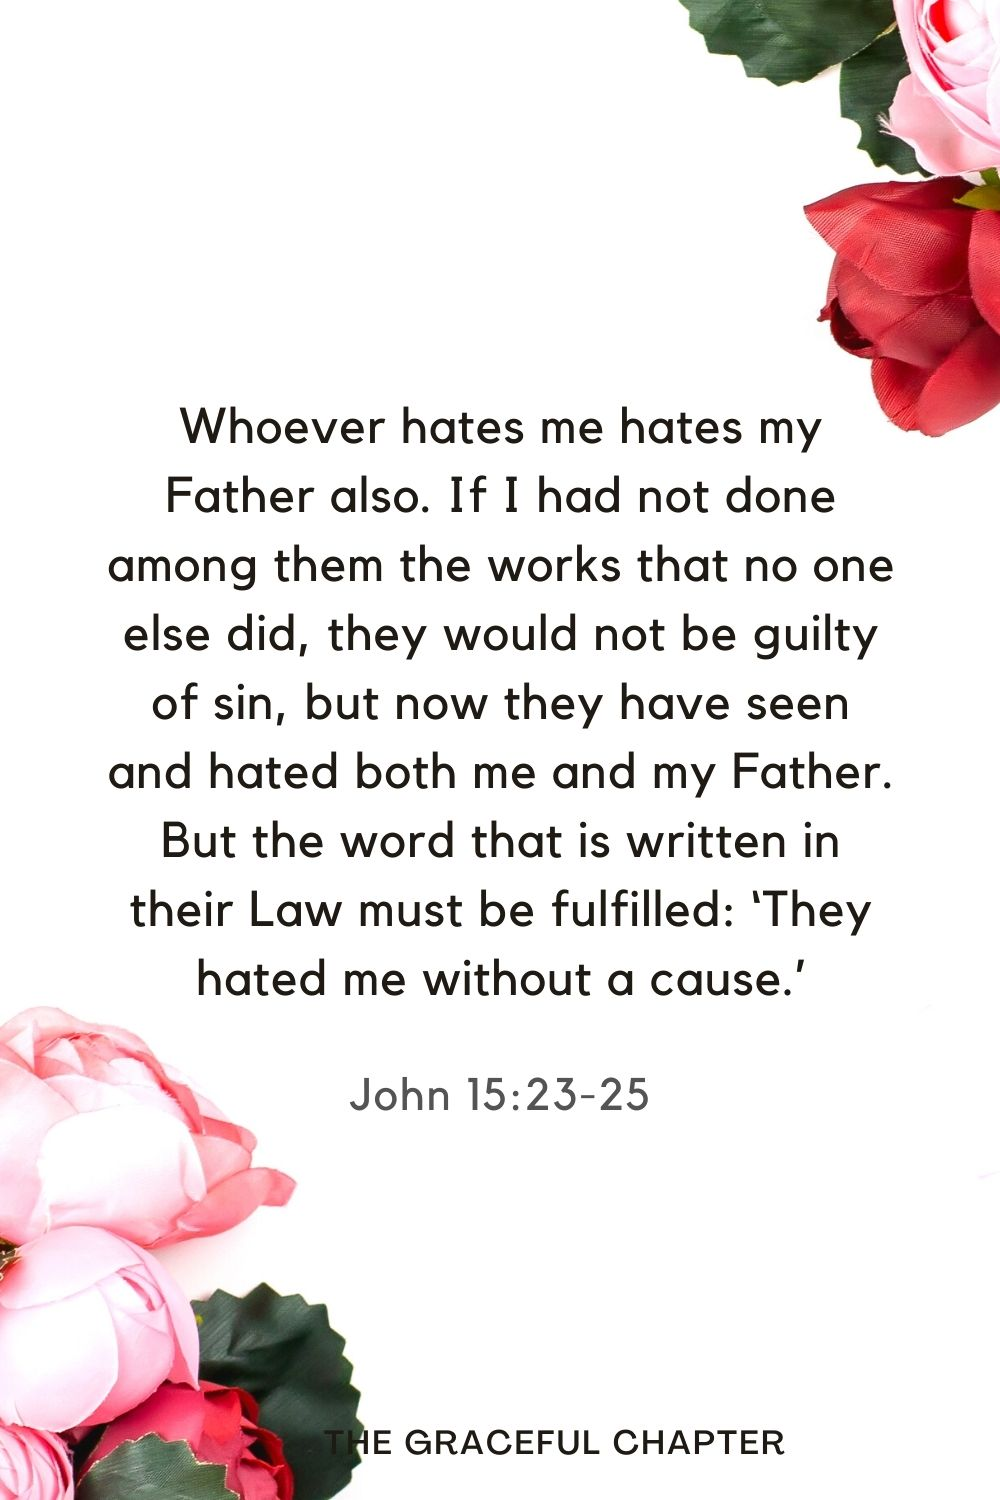 Whoever hates me hates my Father also.If I had not done among them the works that no one else did, they would not be guilty of sin, but now they have seen and hated both me and my Father. But the word that is written in their Law must be fulfilled: 'They hated me without a cause.' John 15:23-25